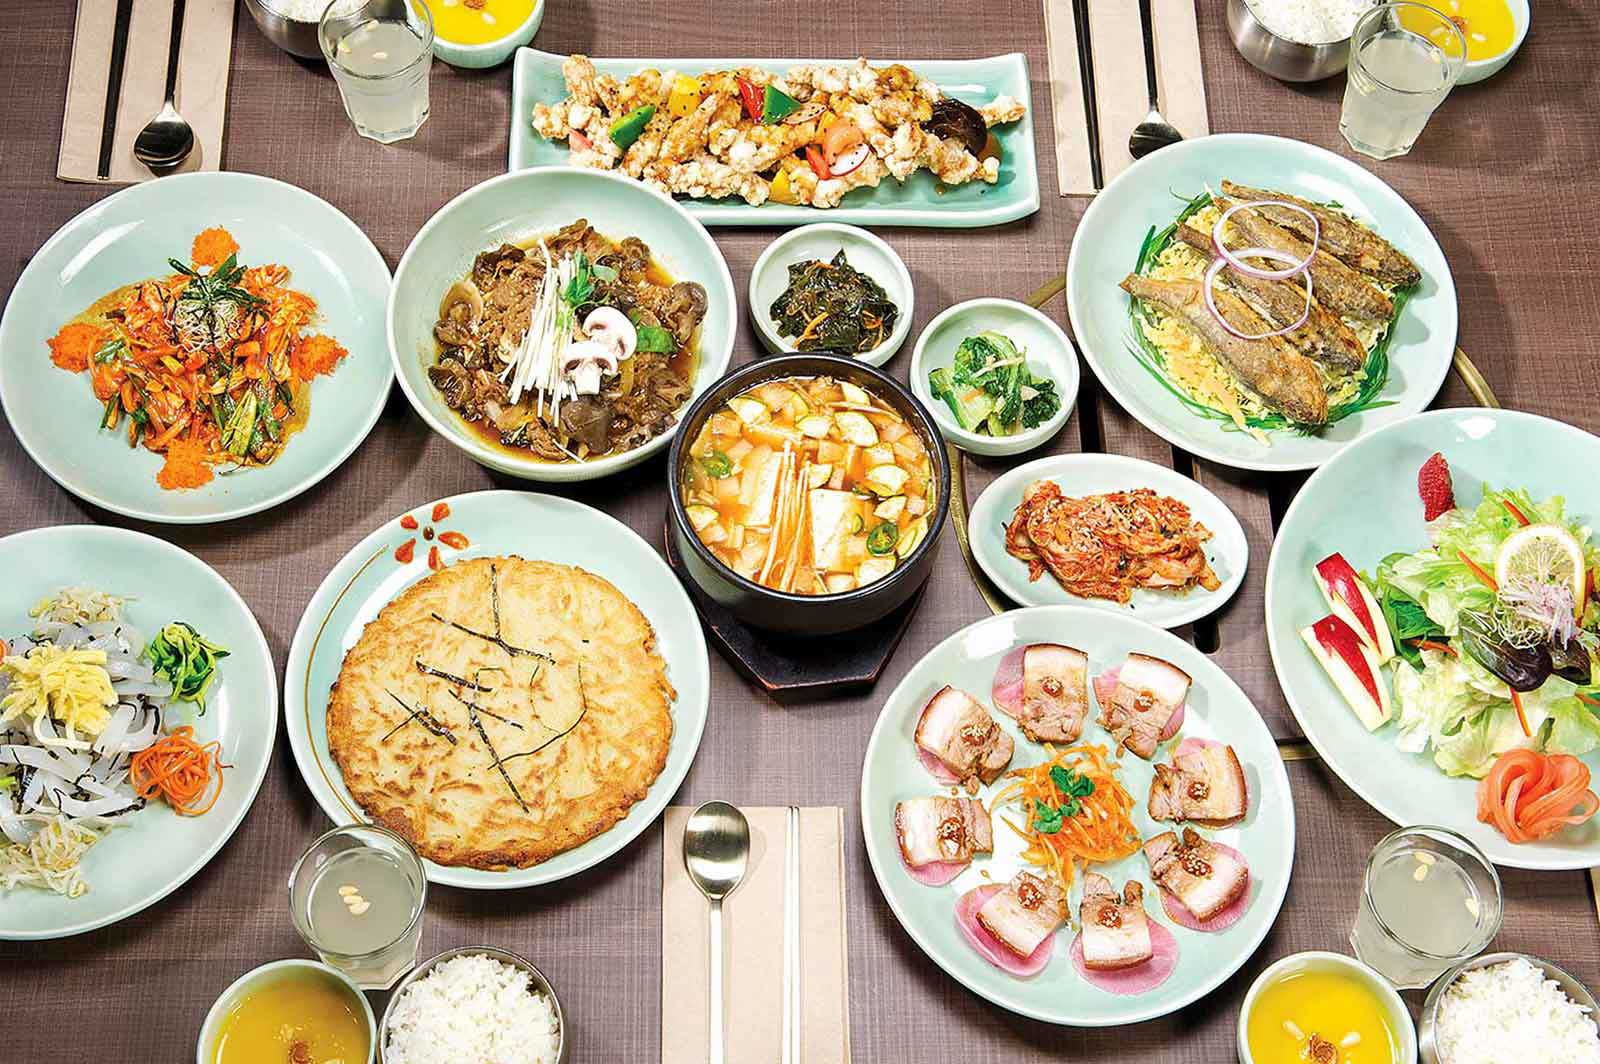 korean lunch menu vancouver sura english course names dish cuisine koreans dishes translated special dining discuss romanized directly whether better